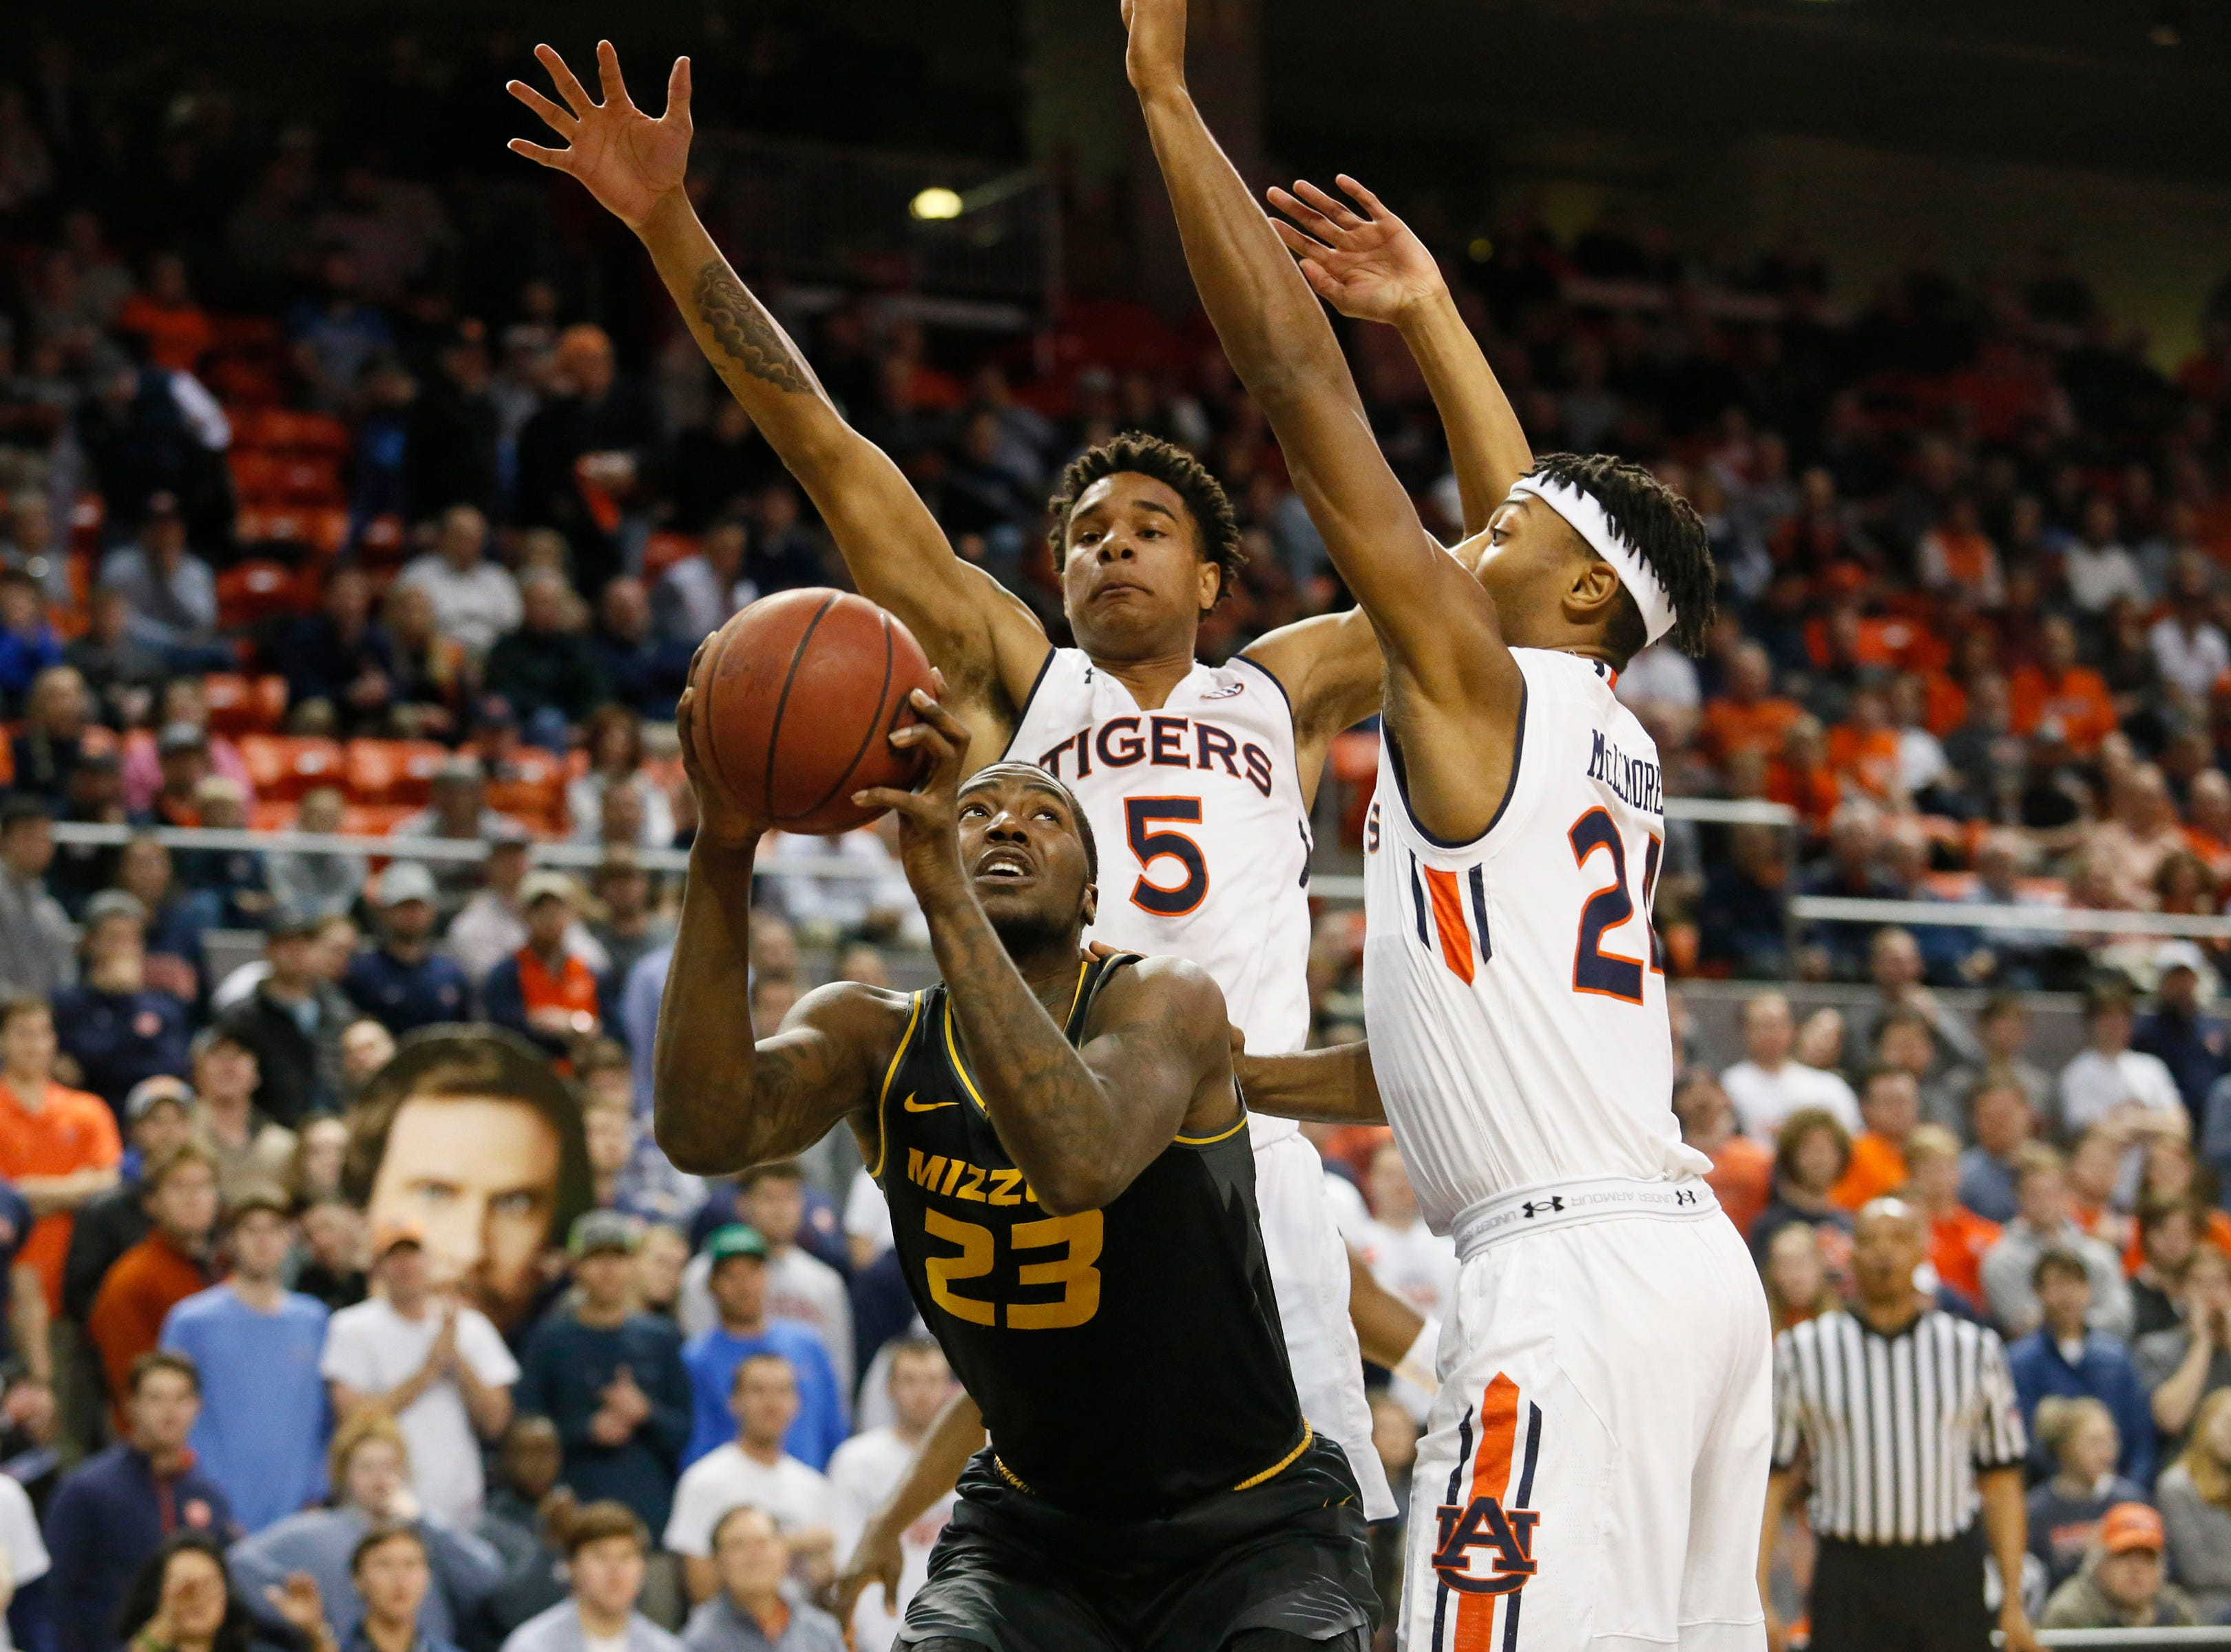 Jan 30, 2019; Auburn, AL, USA; Missouri Tigers forward Jeremiah Tilmon (23) shoots between Auburn Tigers forward Chuma Okeke (5) and forward Anfernee McLemore (24) during the first half at Auburn Arena. Mandatory Credit: John Reed-USA TODAY Sports